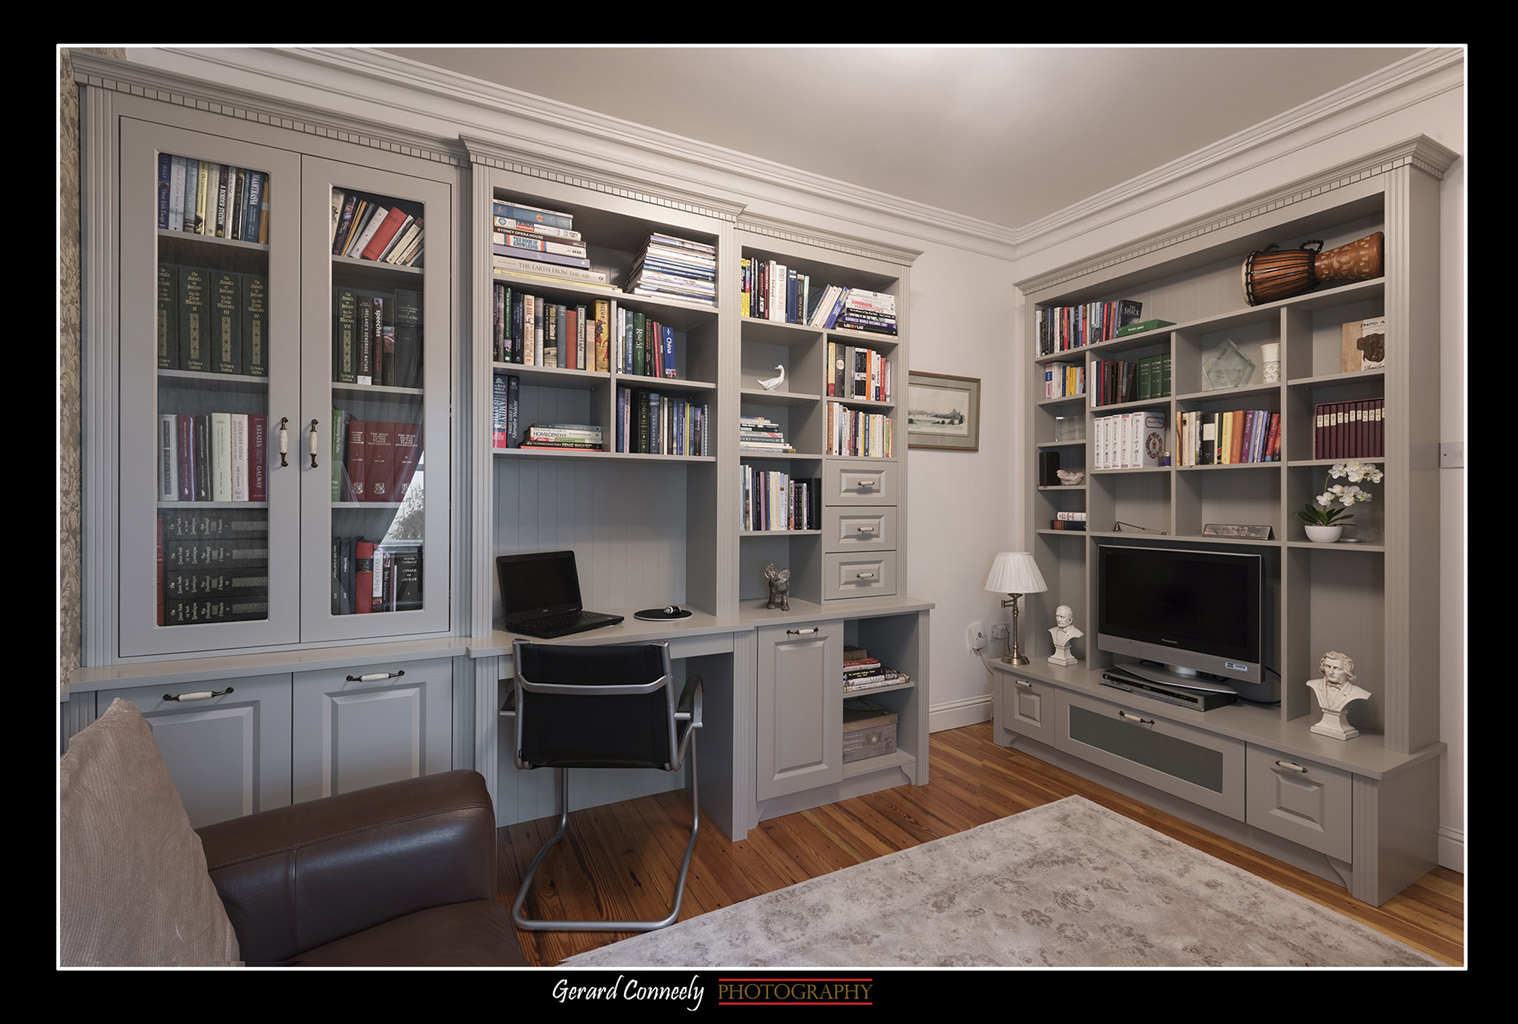 Property_Interiors_Photography_Gerard_Conneely (81).jpg